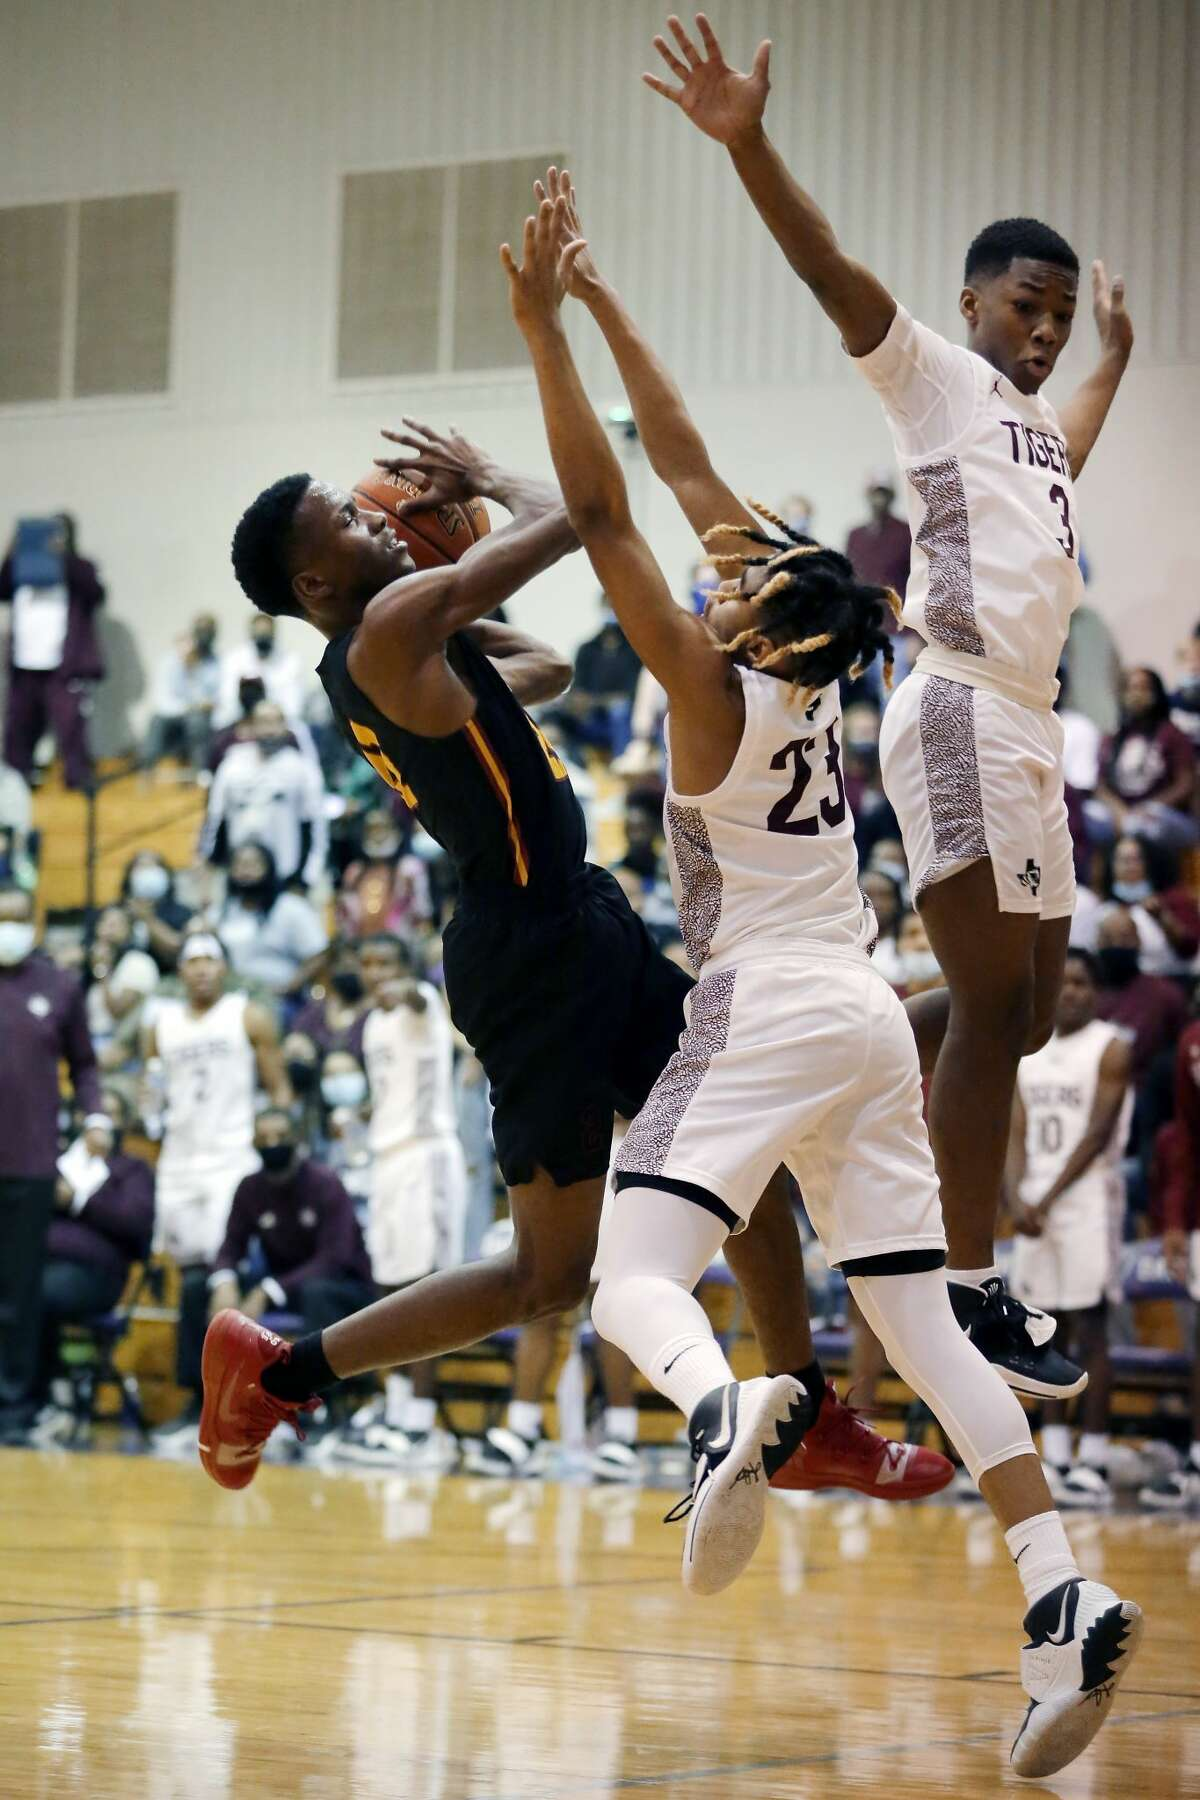 Yates'Tyron Bailey, left, drives up a shot against Silsbee's Jerrick Harper (23) and Traivius Haynes (3) during the first half of their 4A-Region 3 playoff basketball game Friday, Feb. 26, 2021 in Dayton, TX.